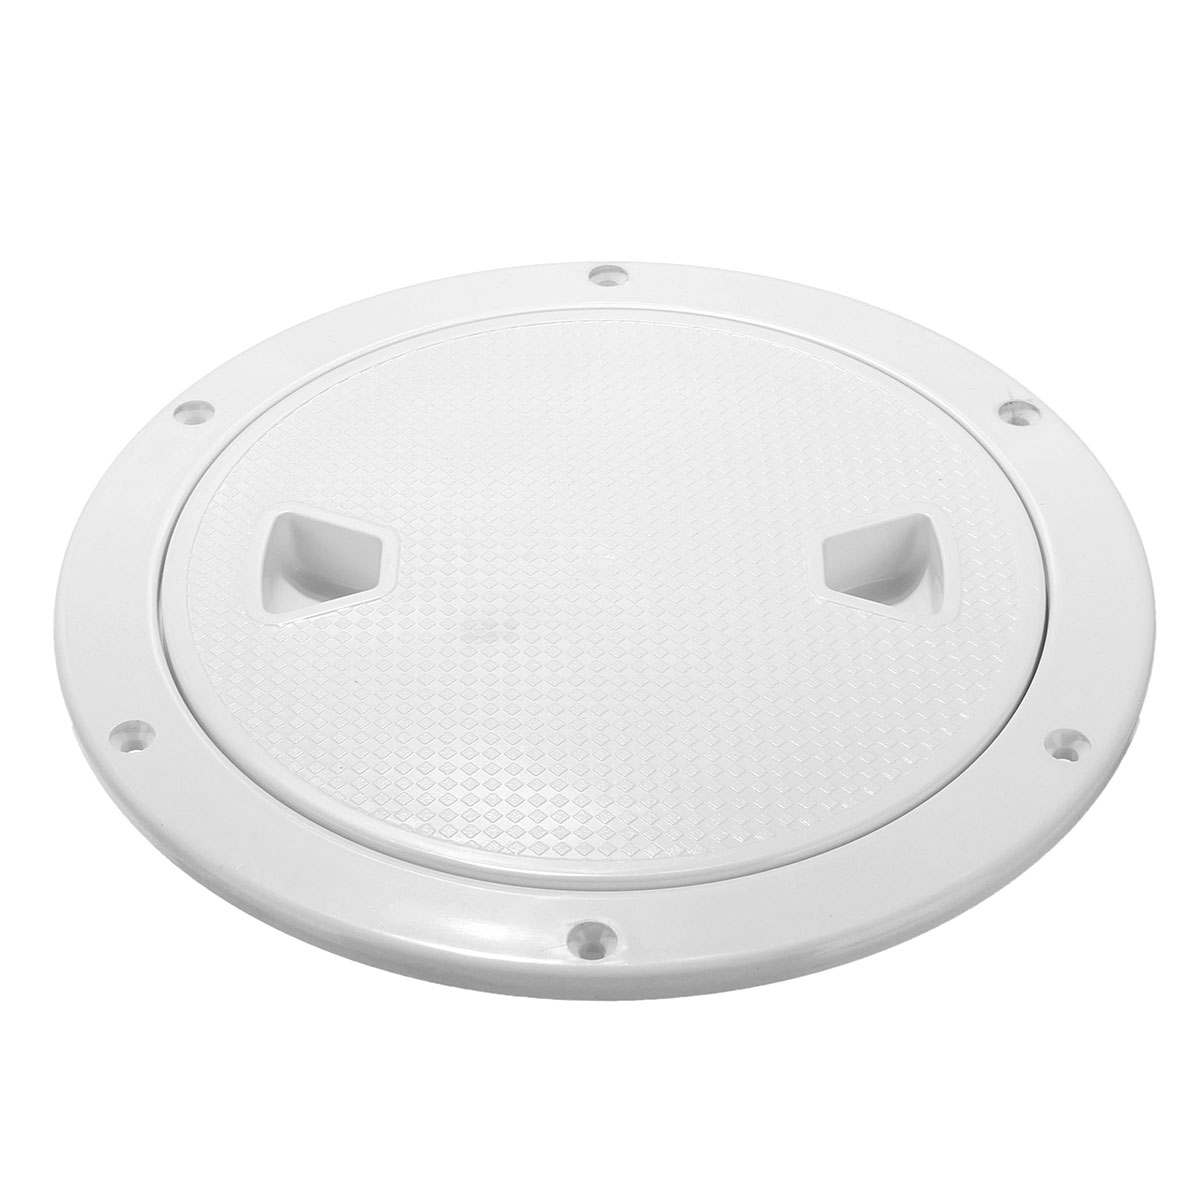 4inch/6inch/8inch Inspection Hatch Cover Deck Plate Non Slip For Marine Boat Kayak Canoe